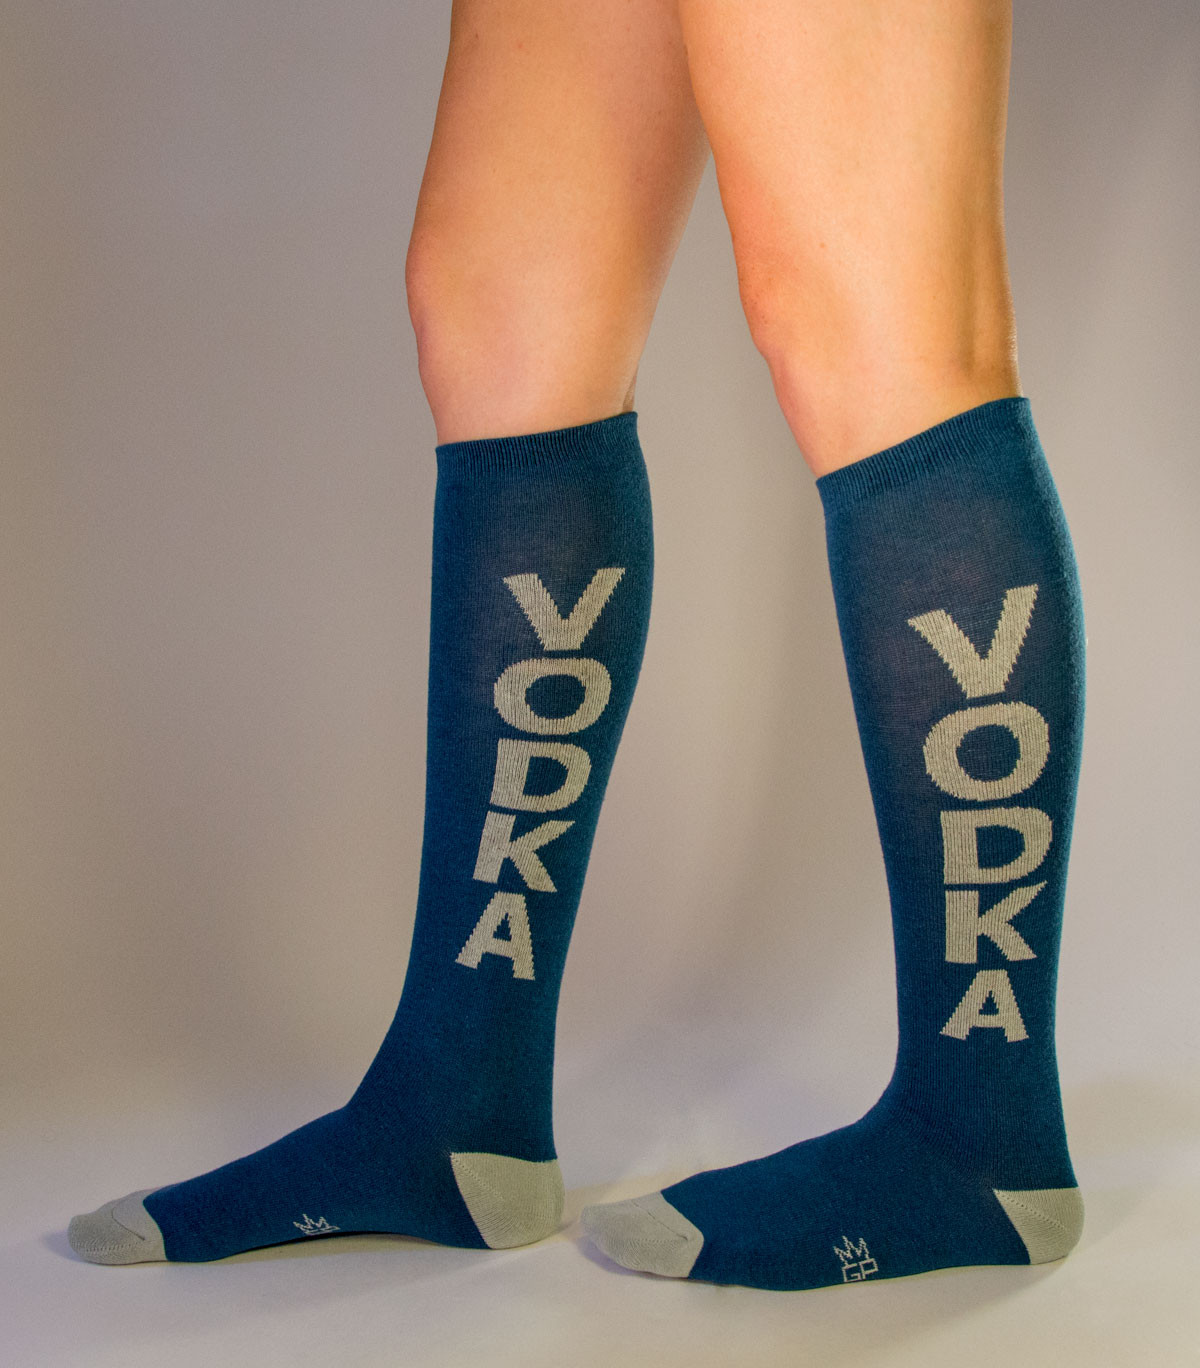 Vodka Socks